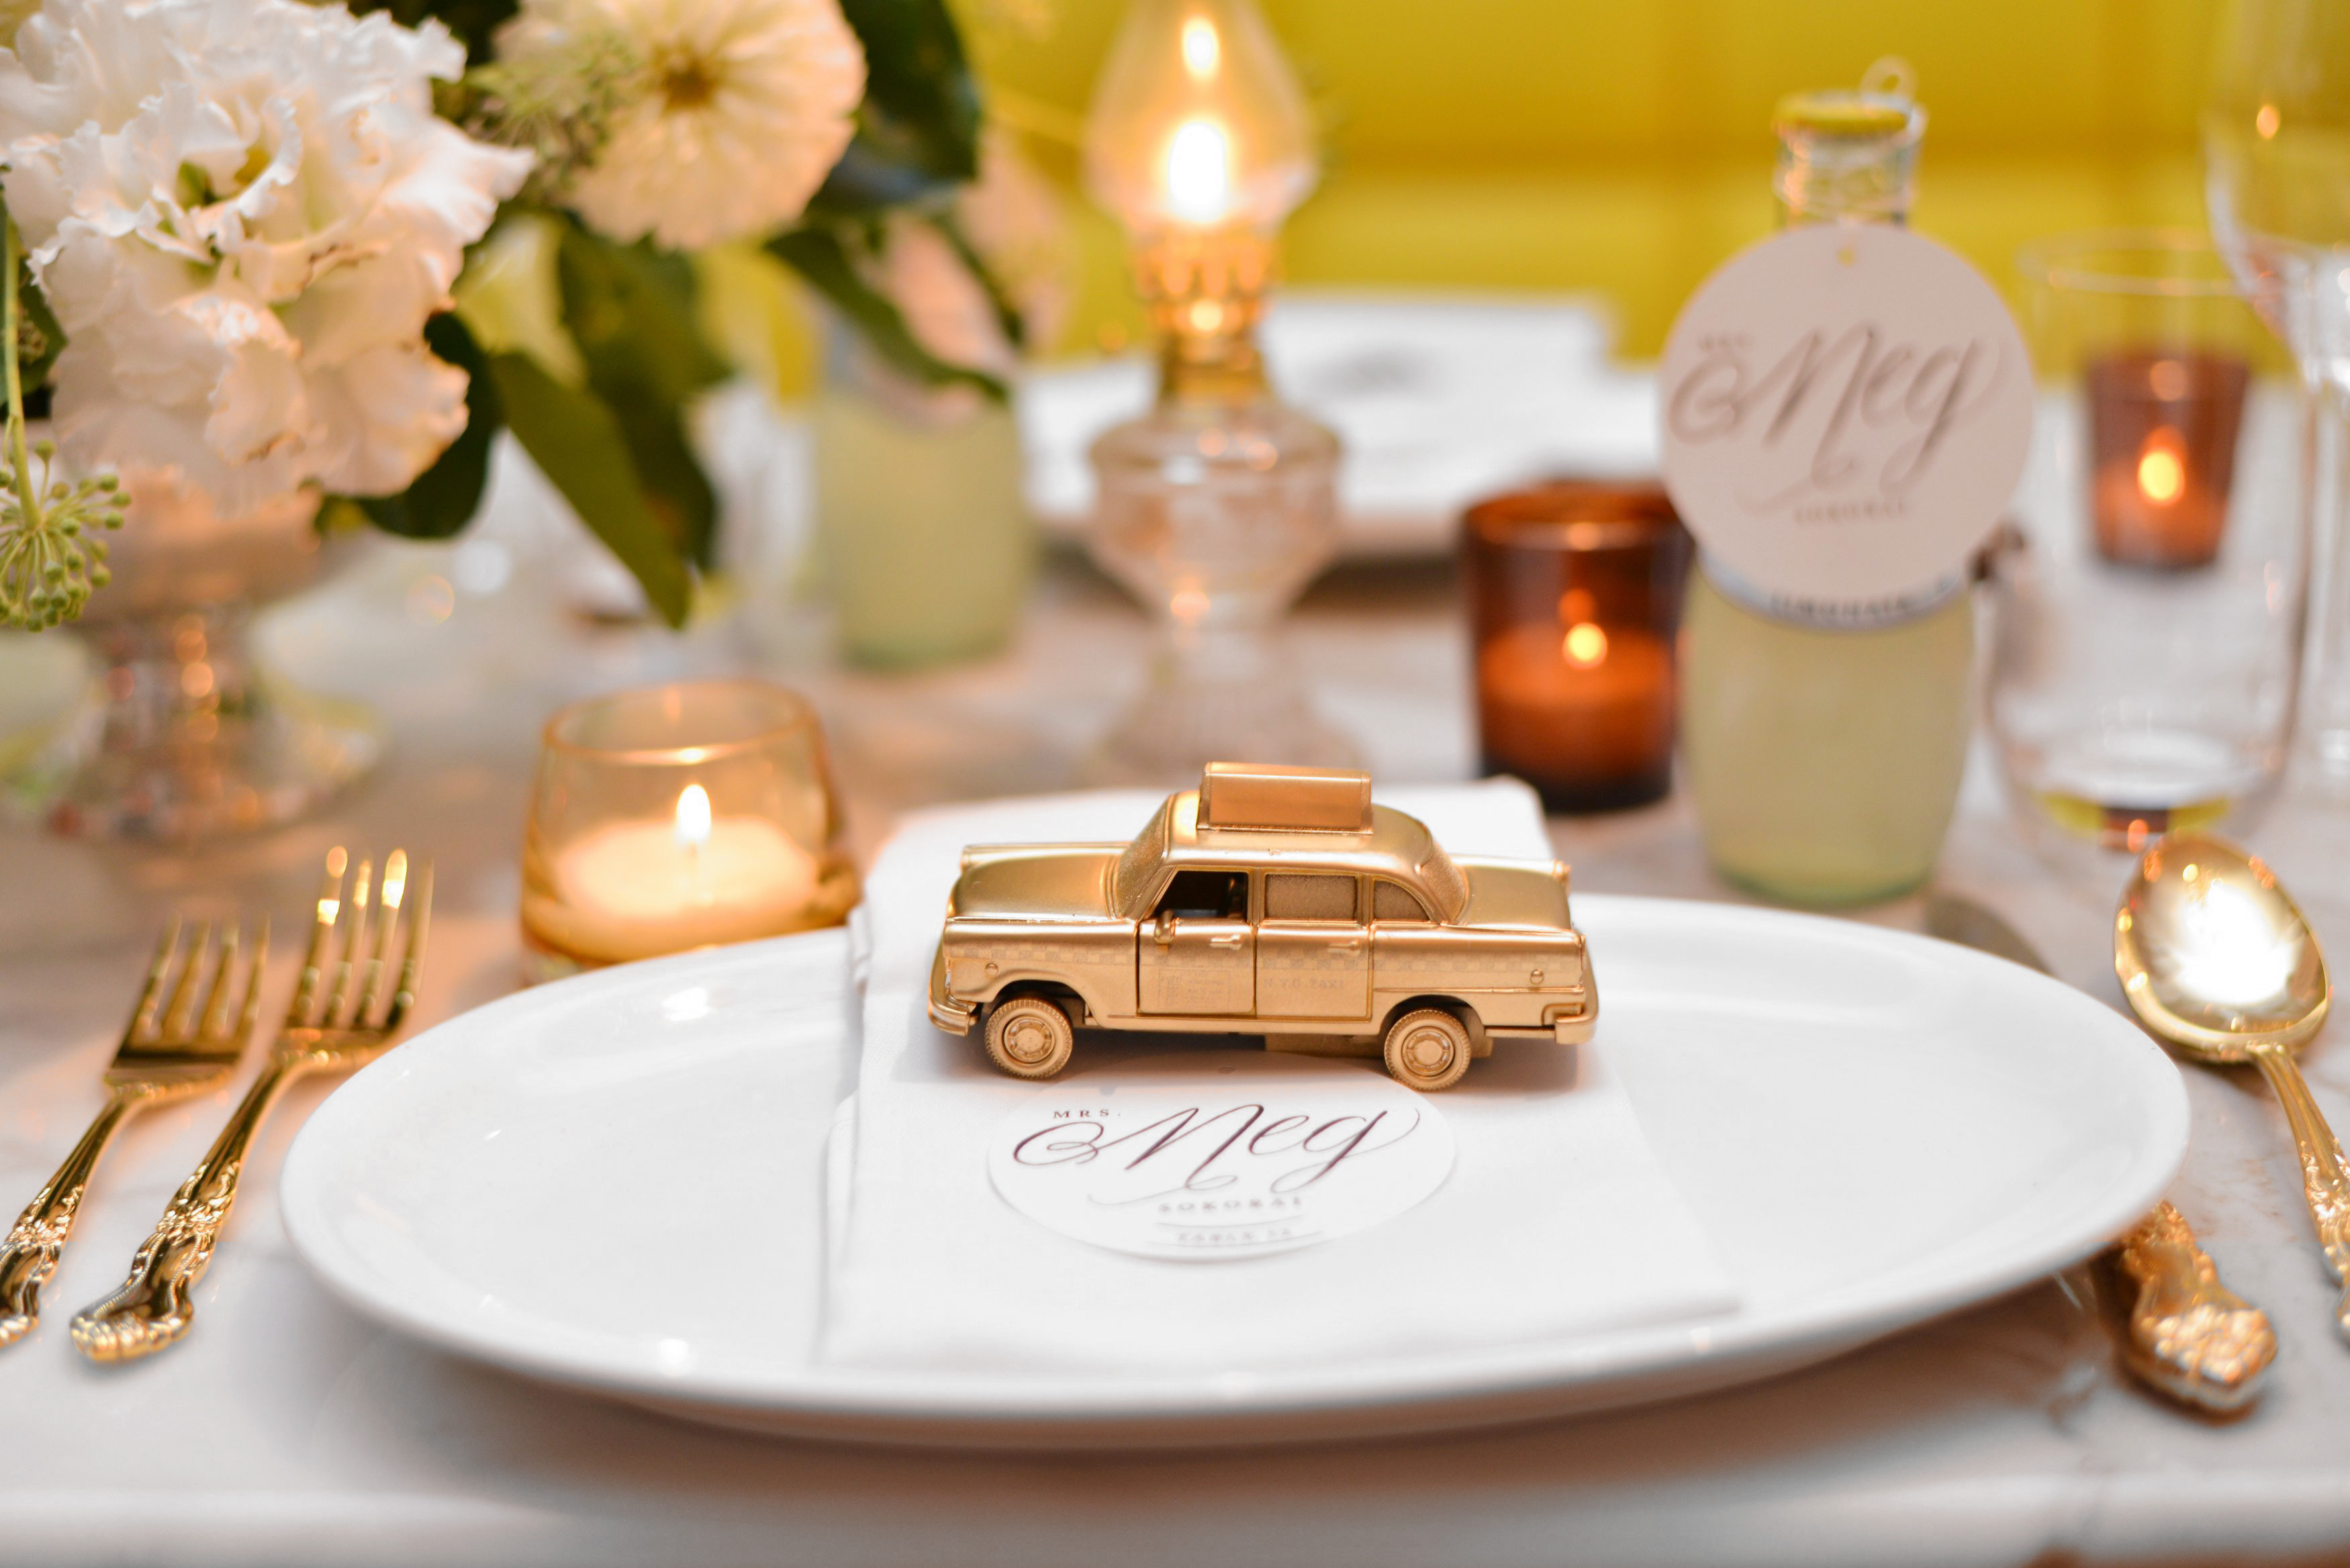 mini taxi cab on place setting